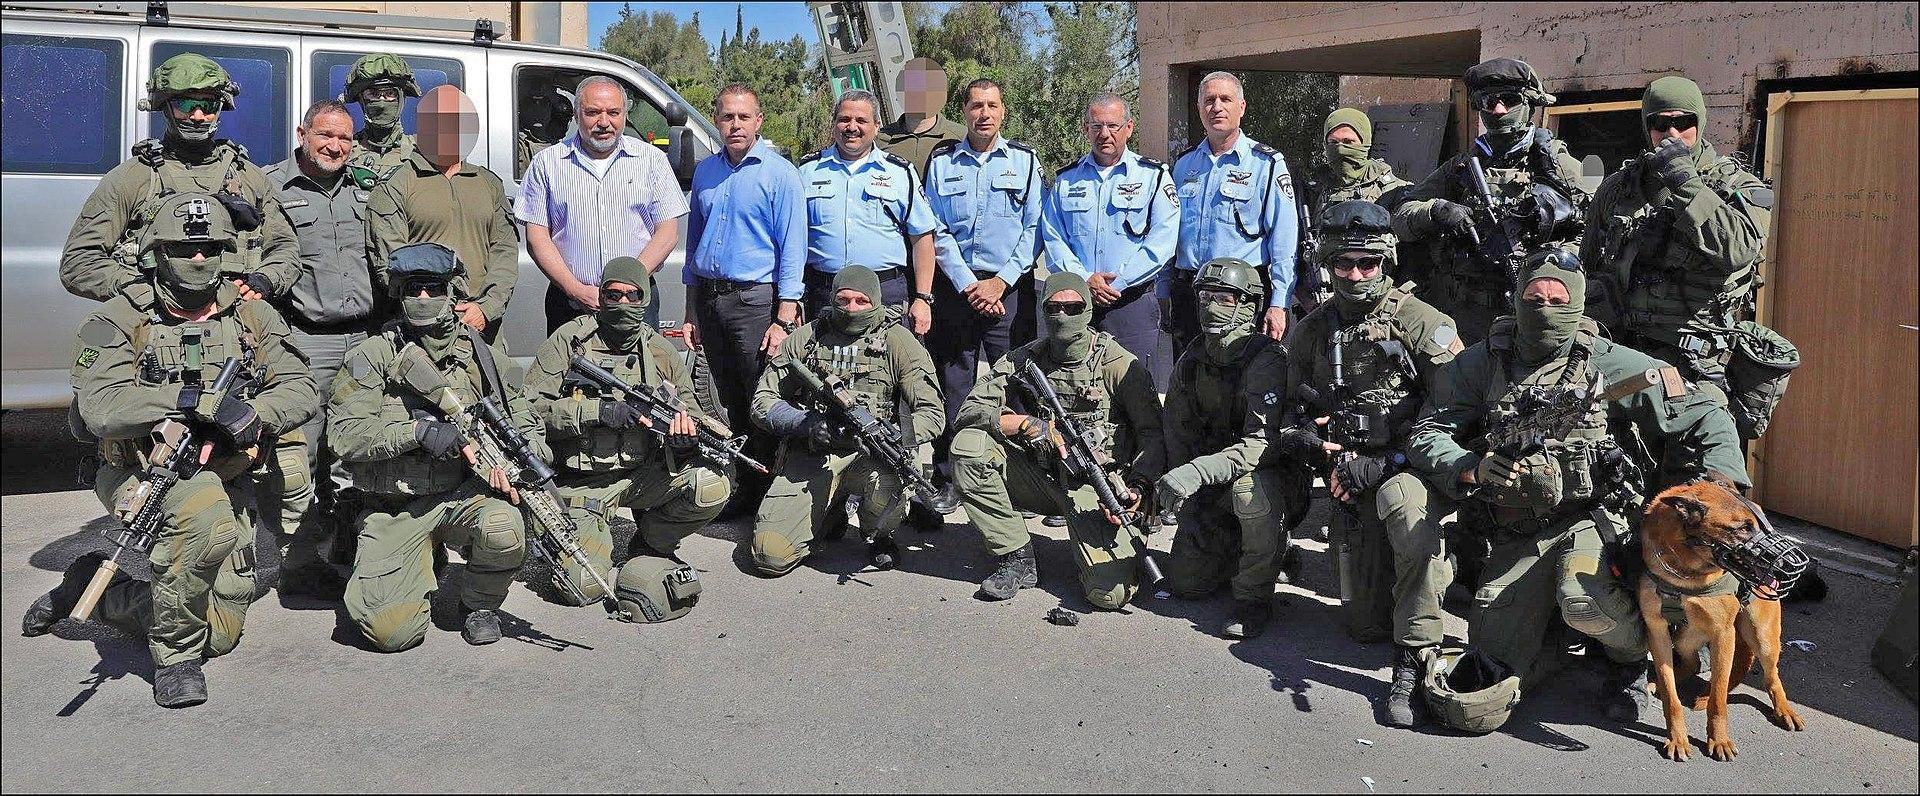 YAMAM operators during the visit of Israeli officials in 2017